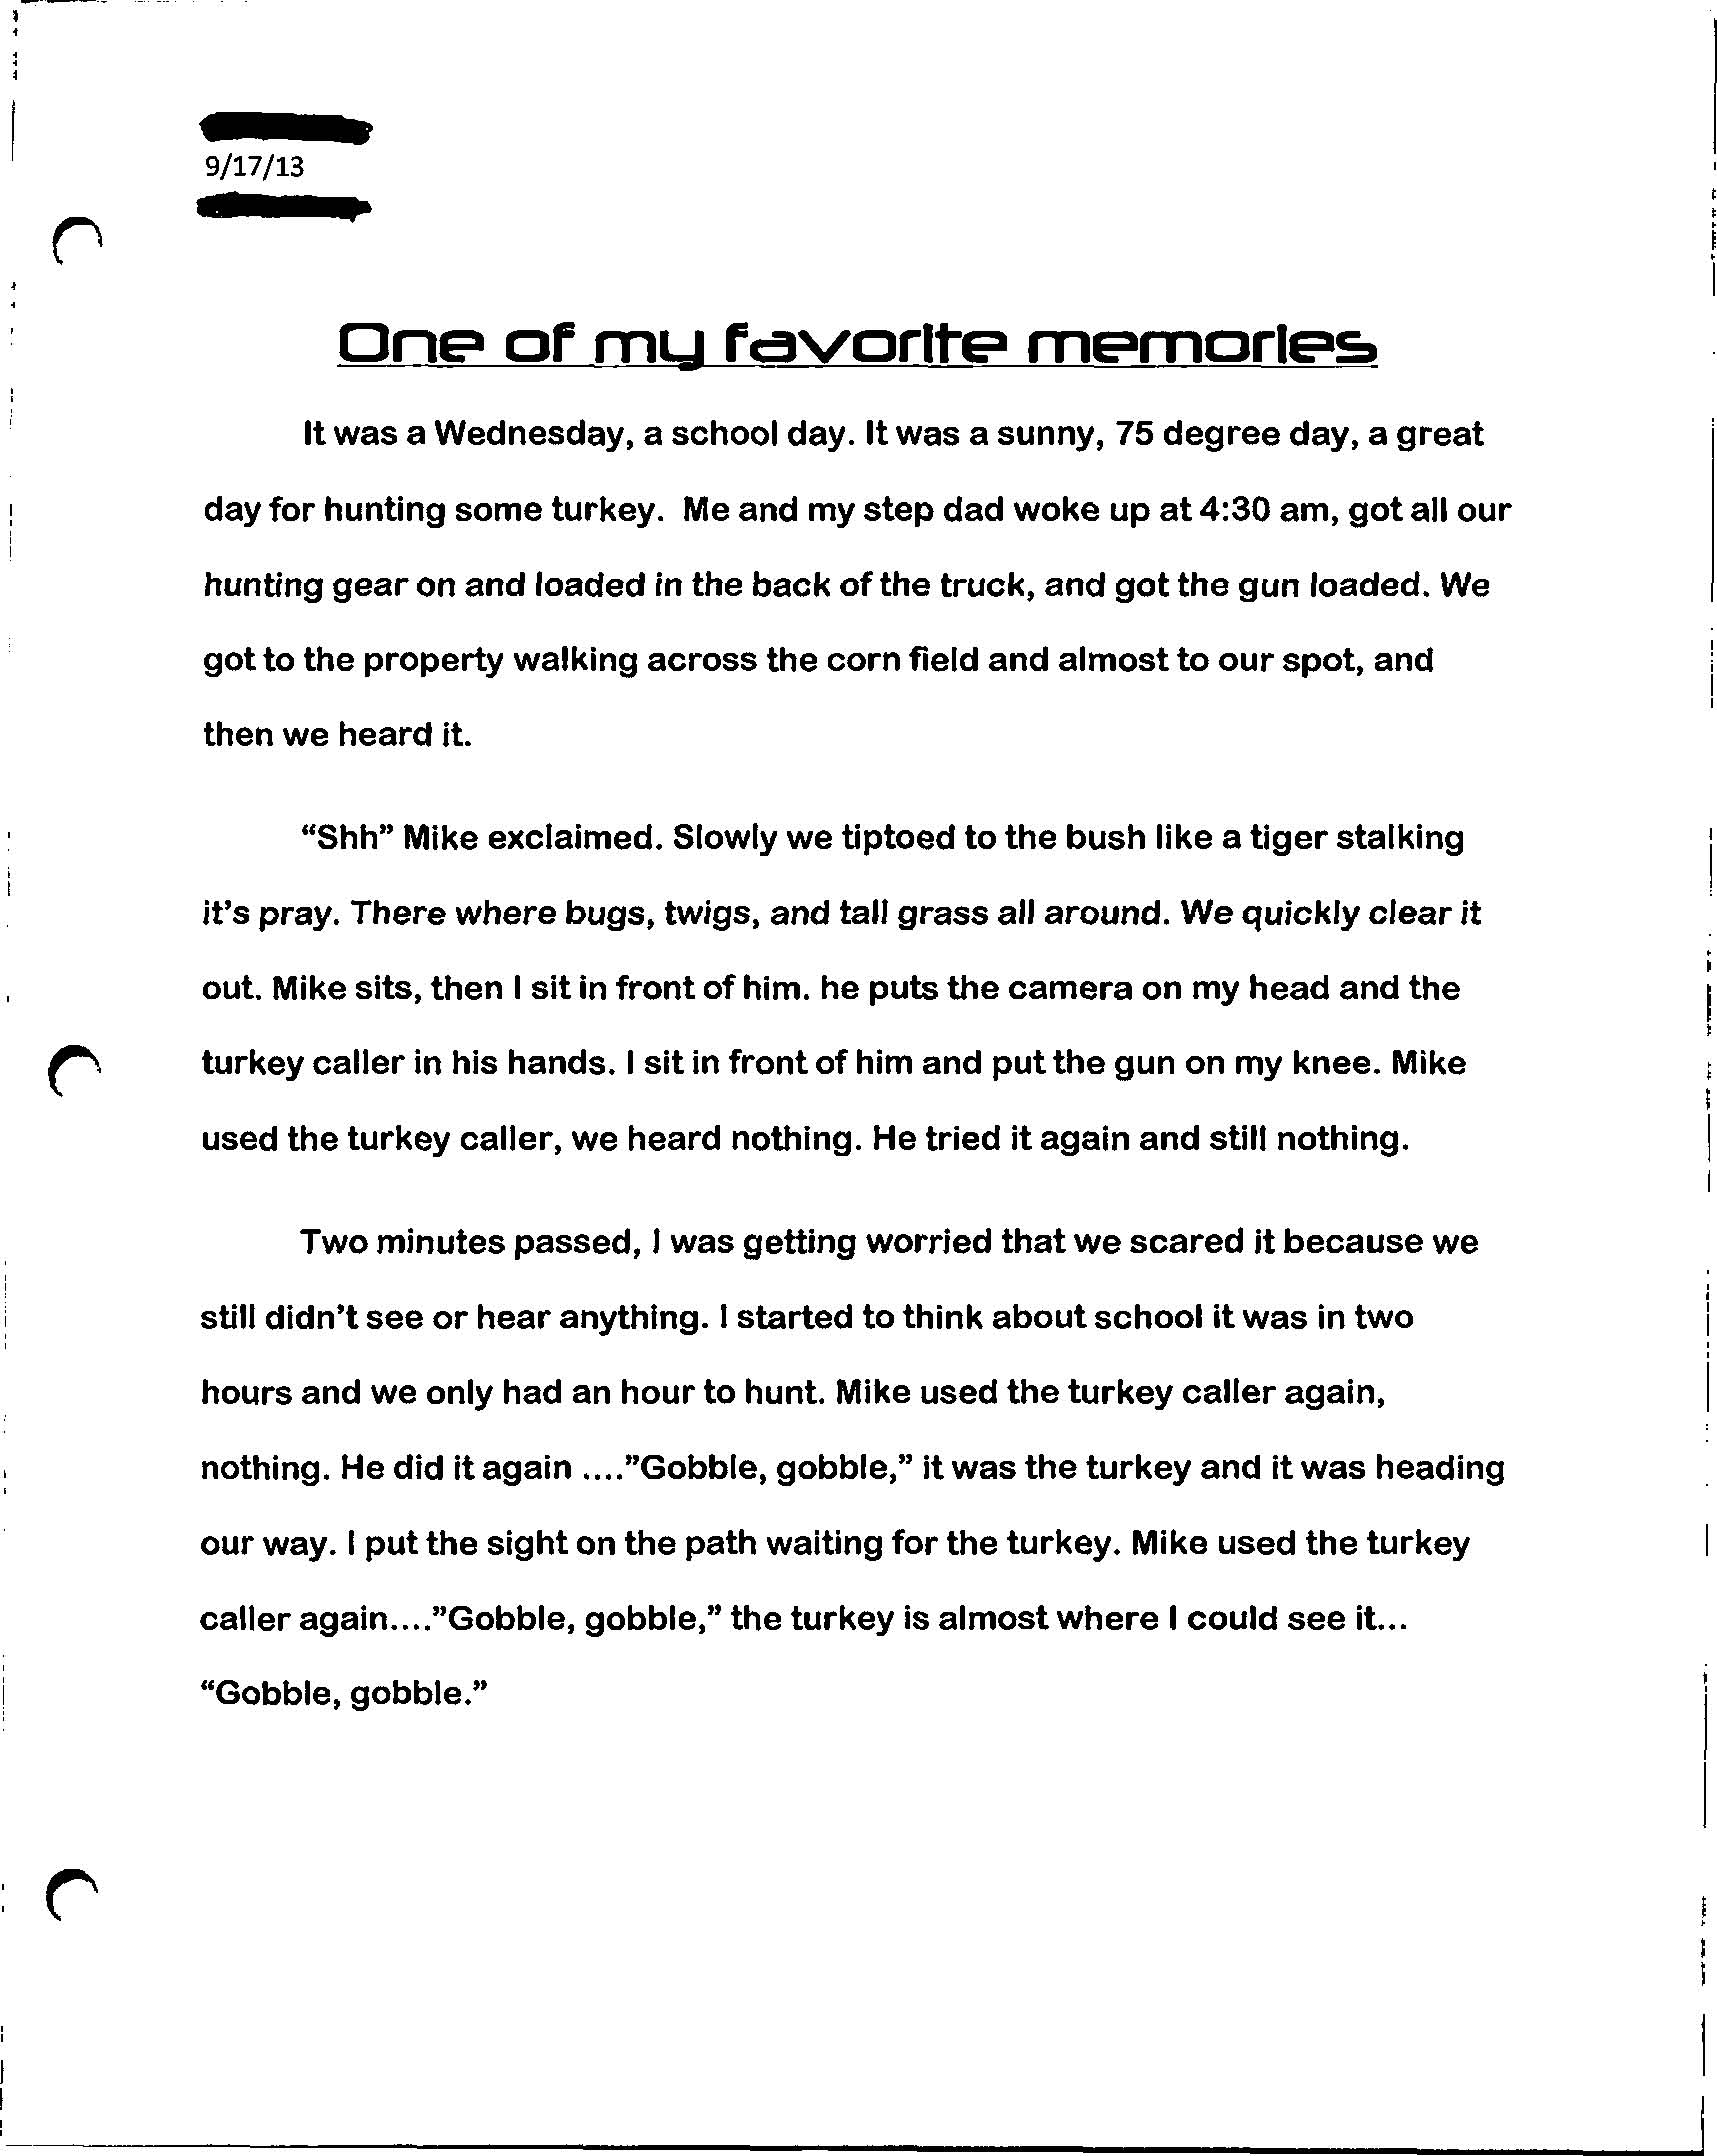 003 Essay Of Who Am I Example Paperexample2 Page 1 Awesome As A Person Filipino Writing Aim In Life Full